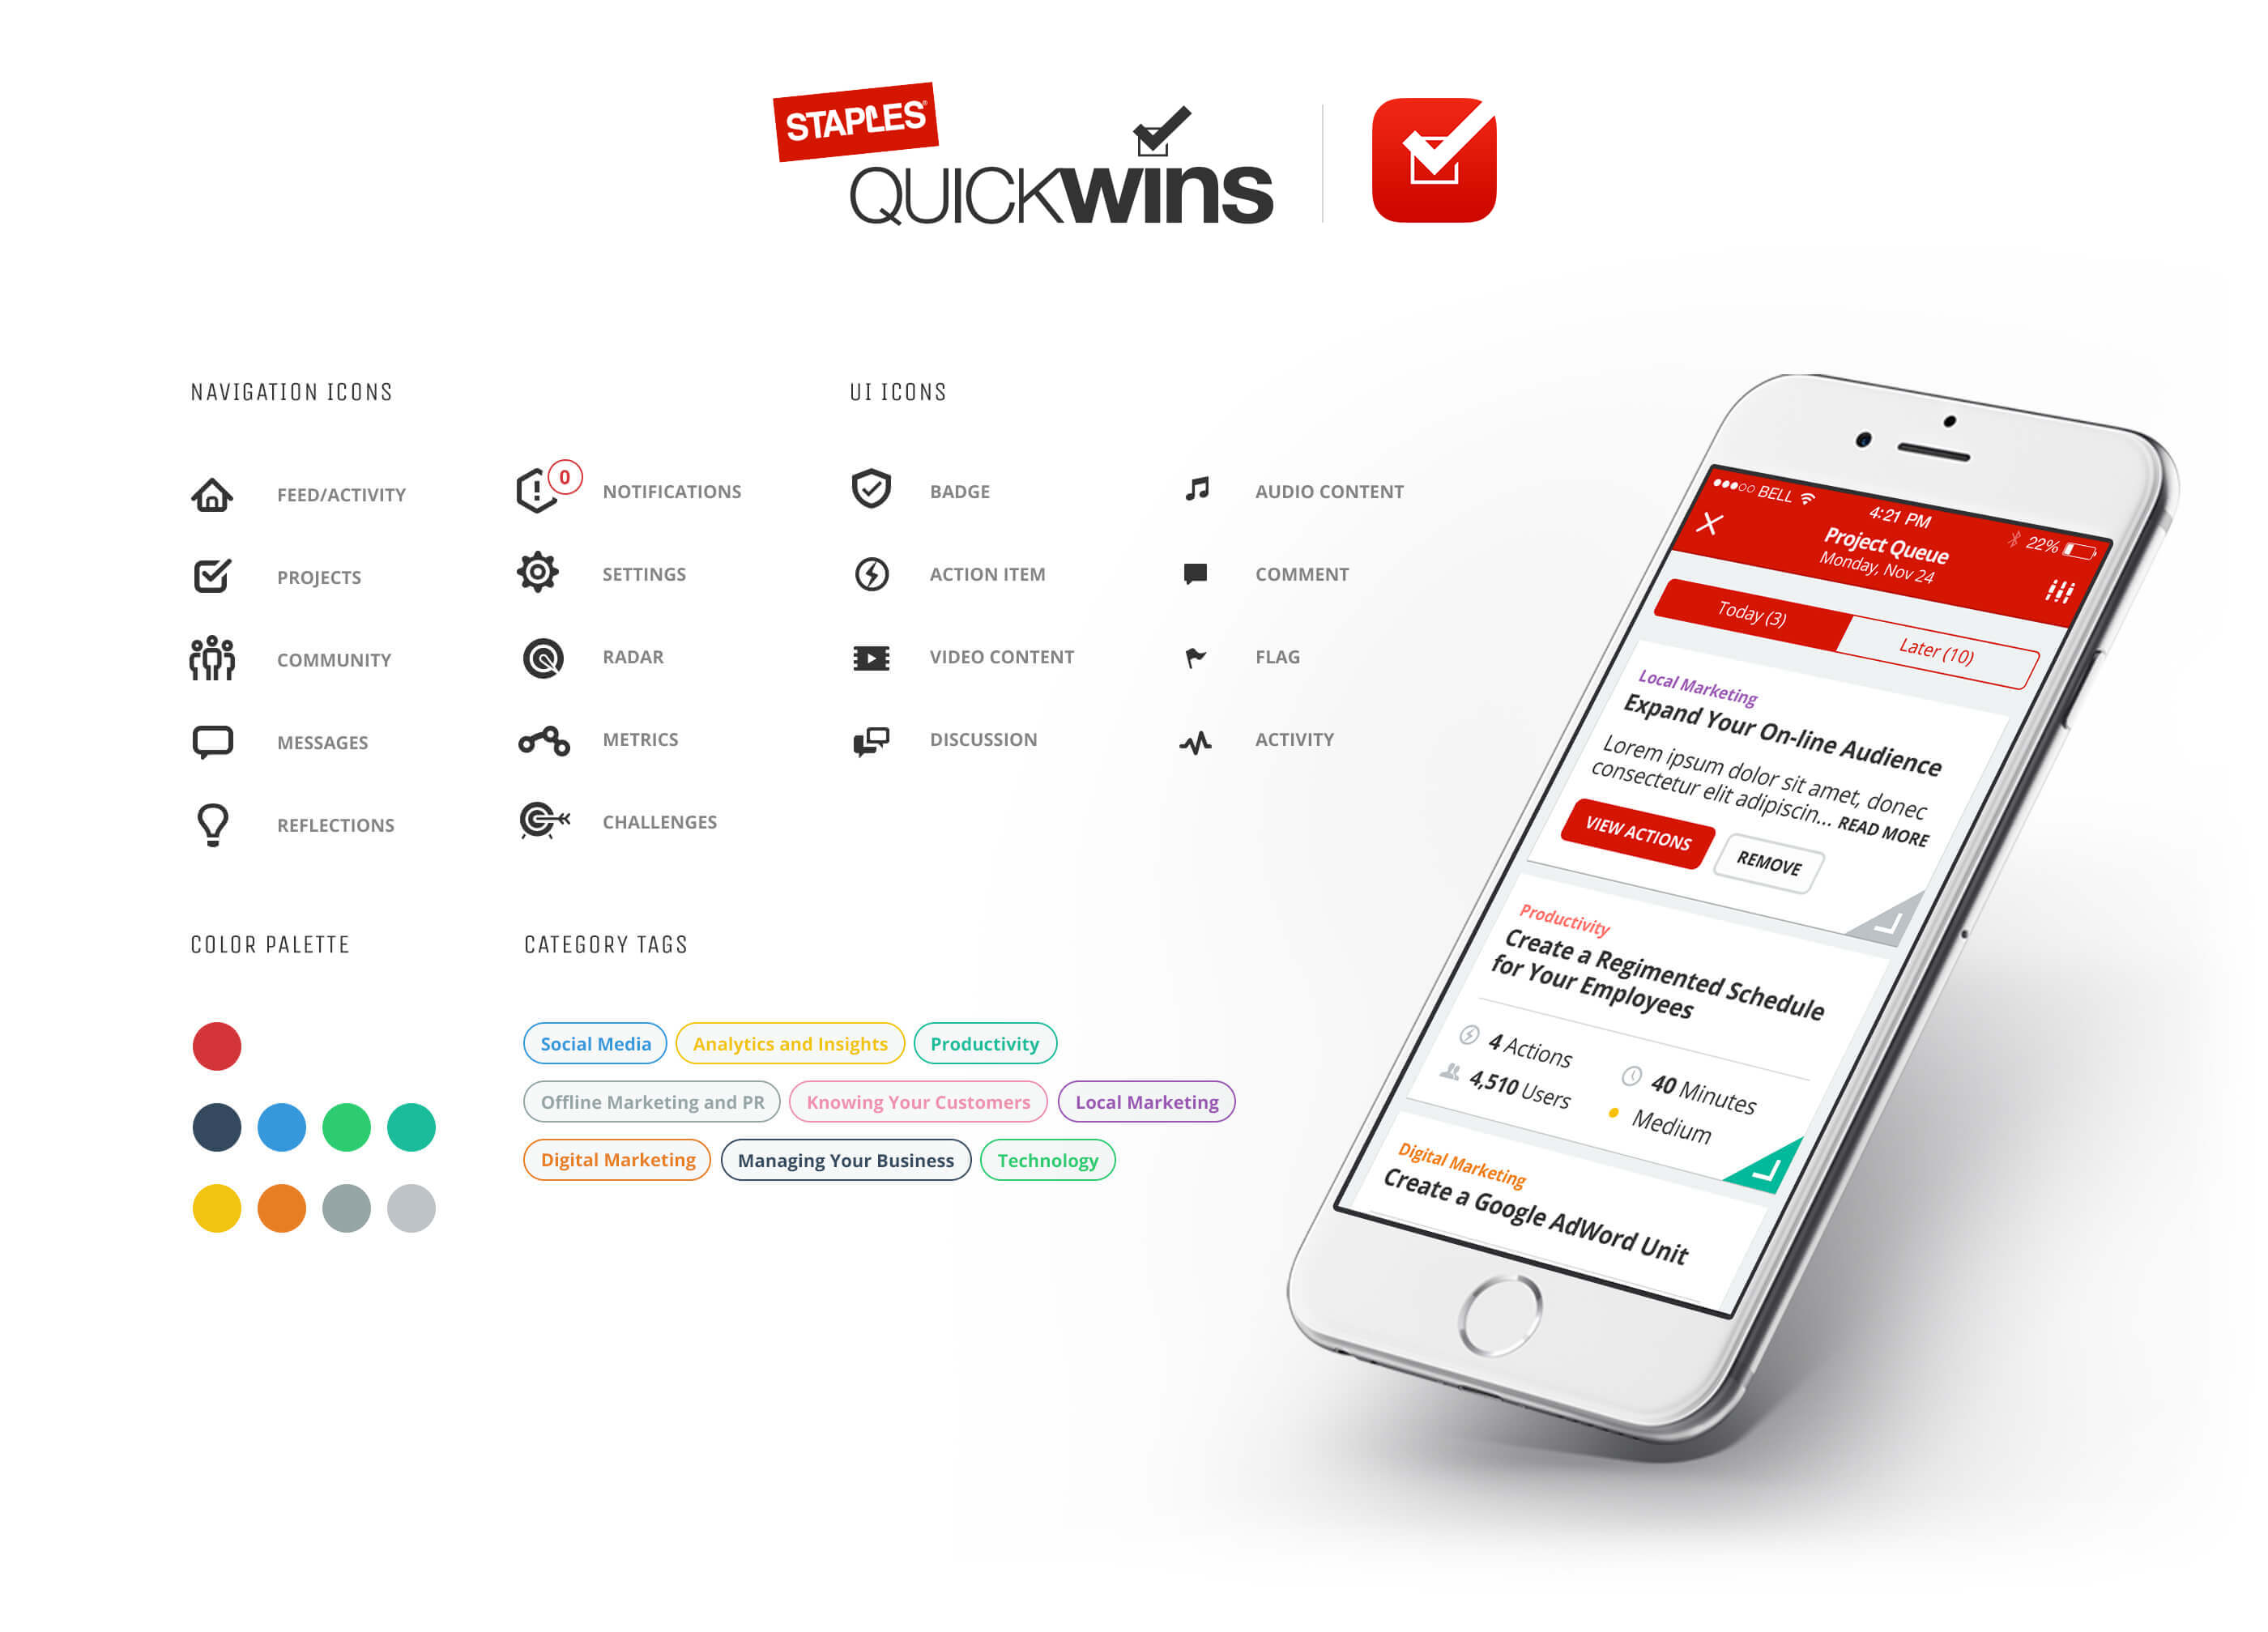 Staples Quick Wins App Styleguide